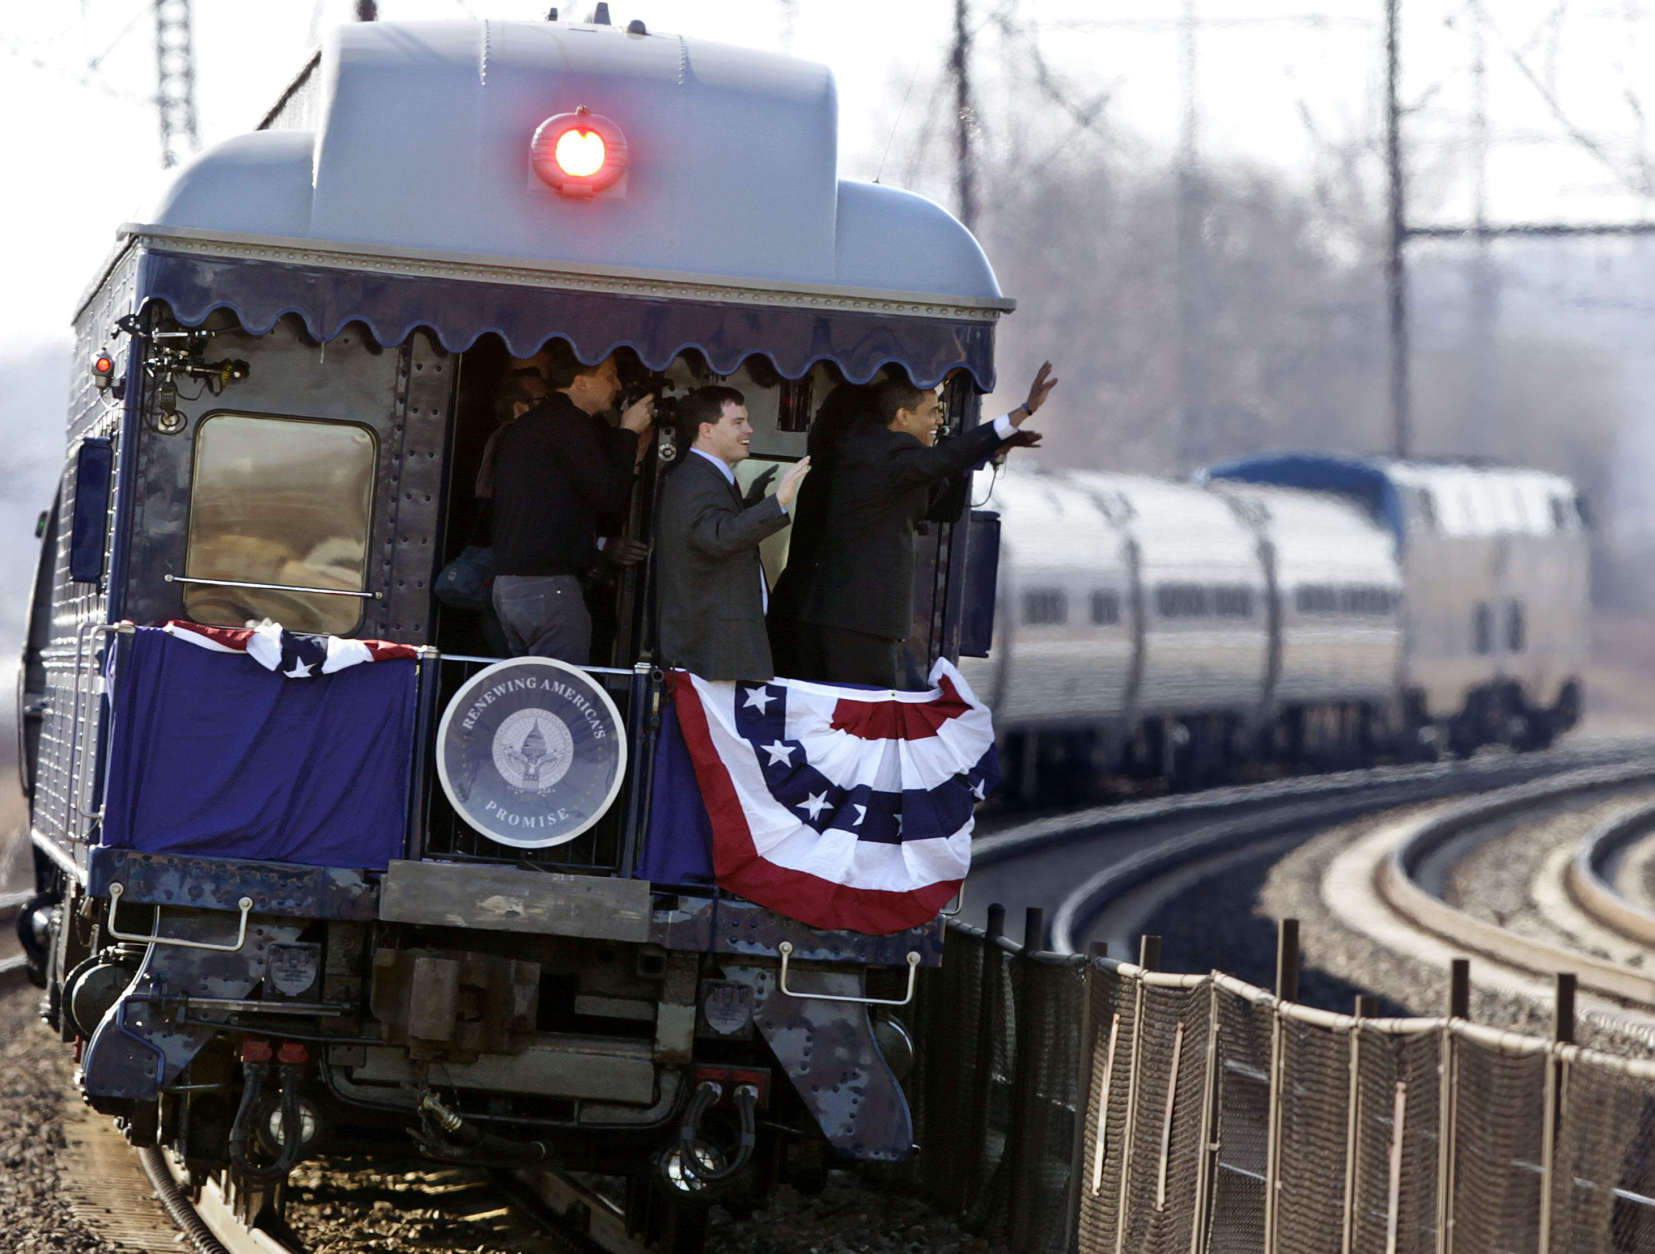 ** RE TRANSMITTED WITH ALTERNATE CROP **President-elect Barack Obama, far right, waves from the back of a train to the waiting crowd at the Claymont Amtrak rail station as it moves through Claymont, Del., Saturday, Jan. 17, 2009. (AP Photo/Carolyn Kaster)